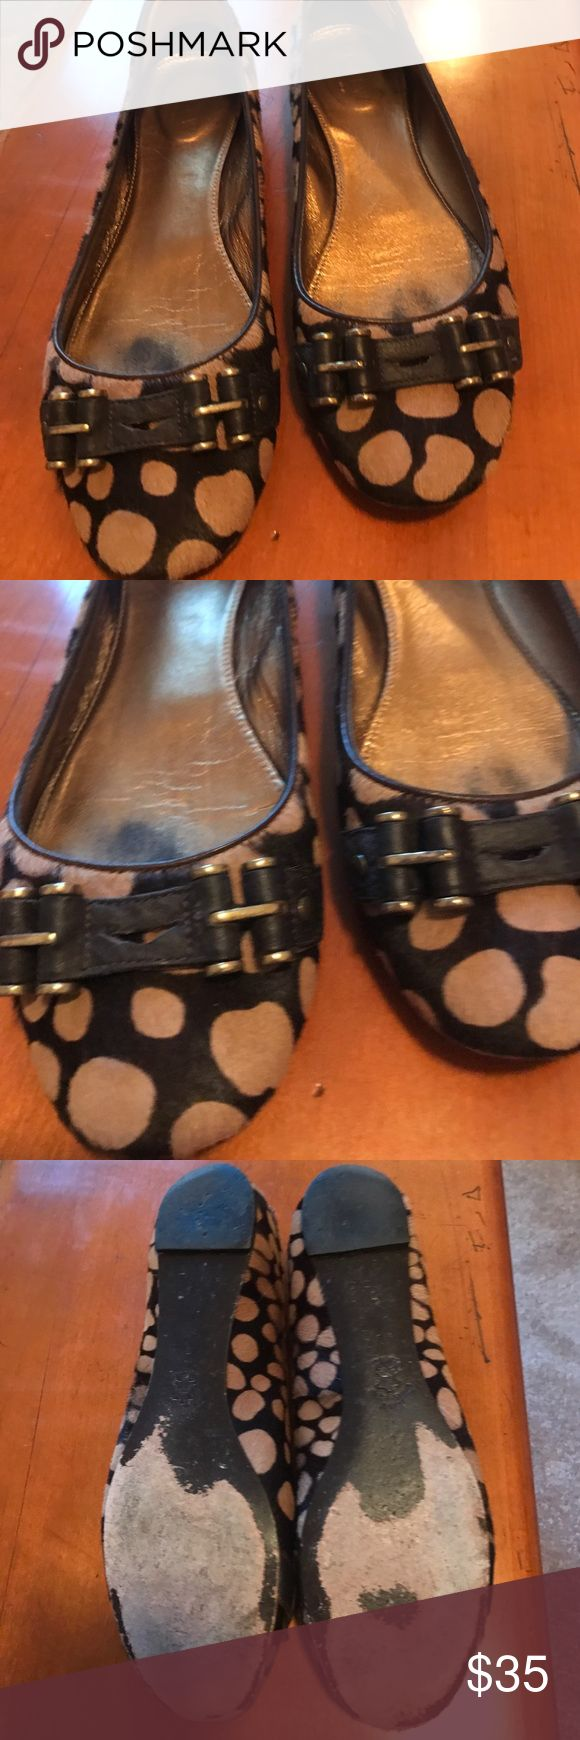 JCrew leopard ballet flat Leopard calf hair ballet flat JCrew Shoes Flats & Loafers